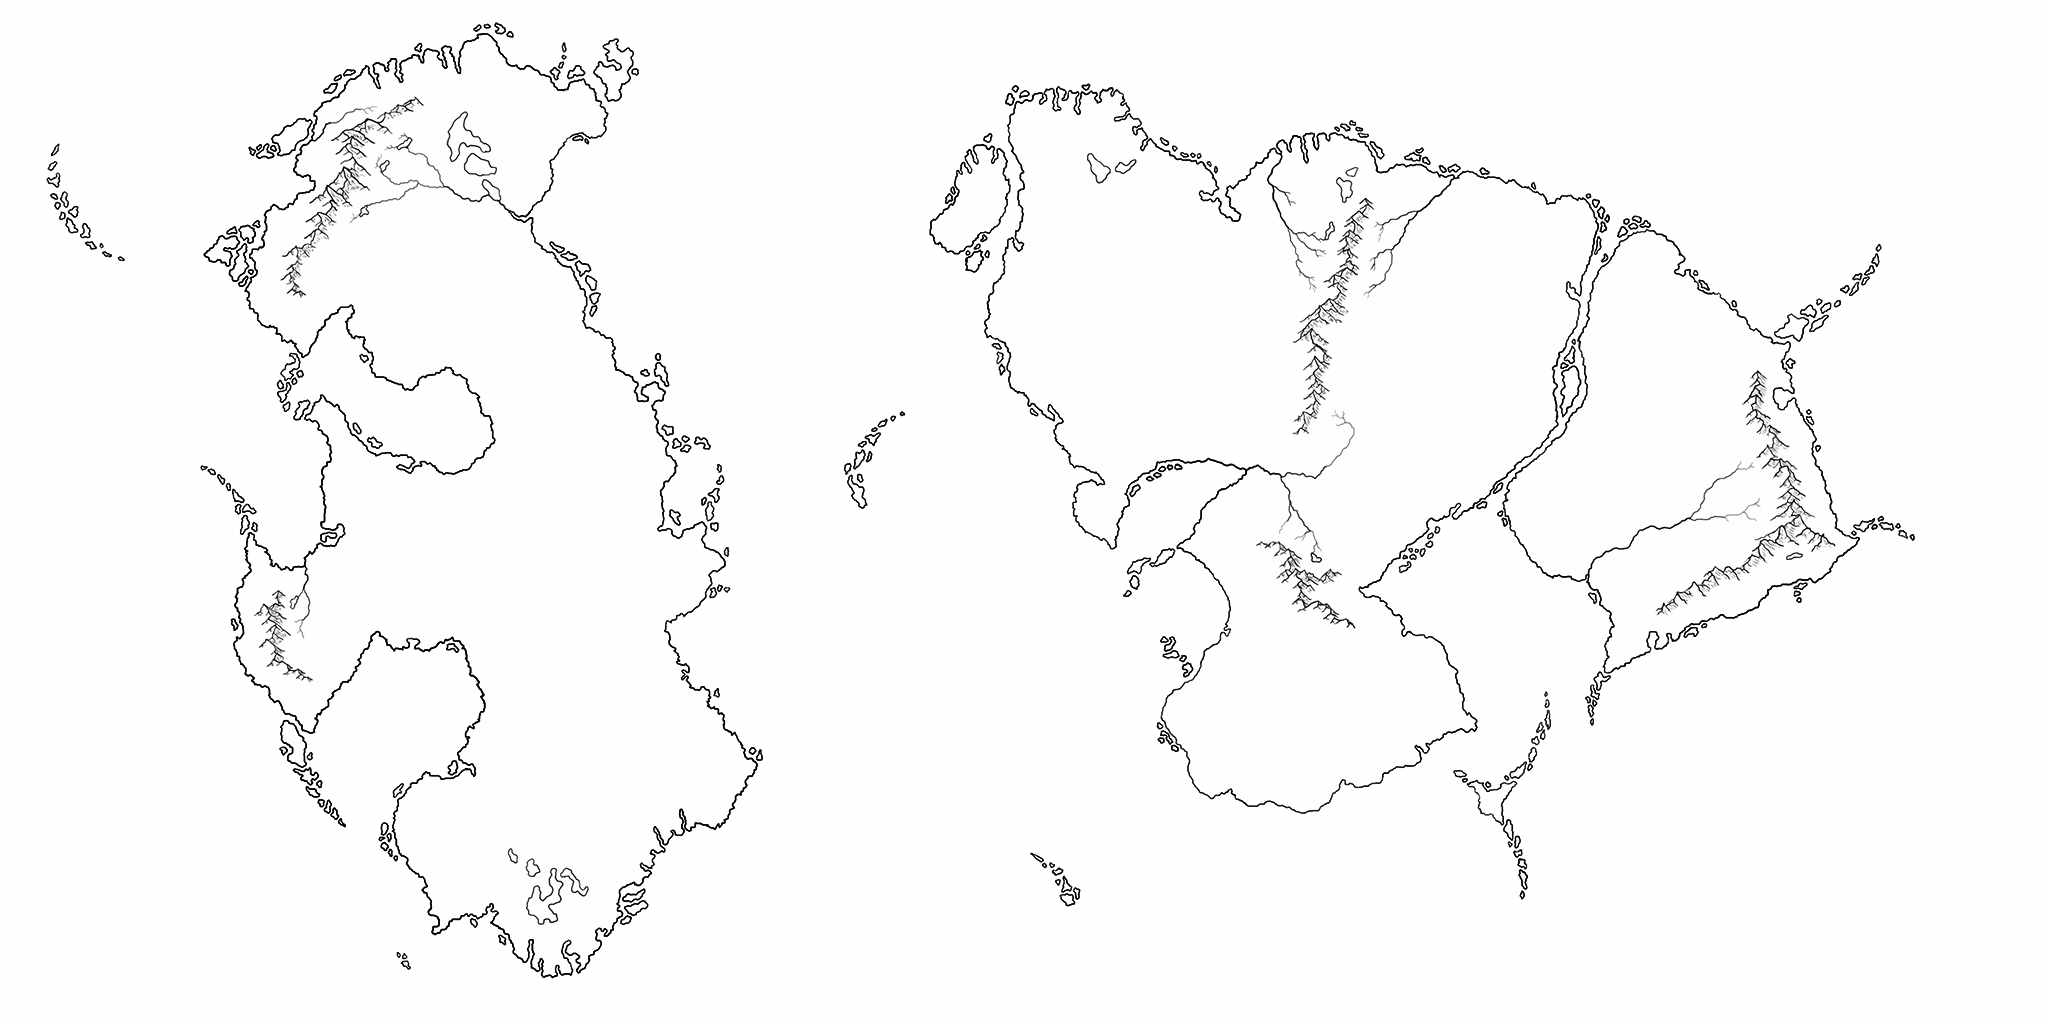 Step 7 - Adding Rivers and Lakes